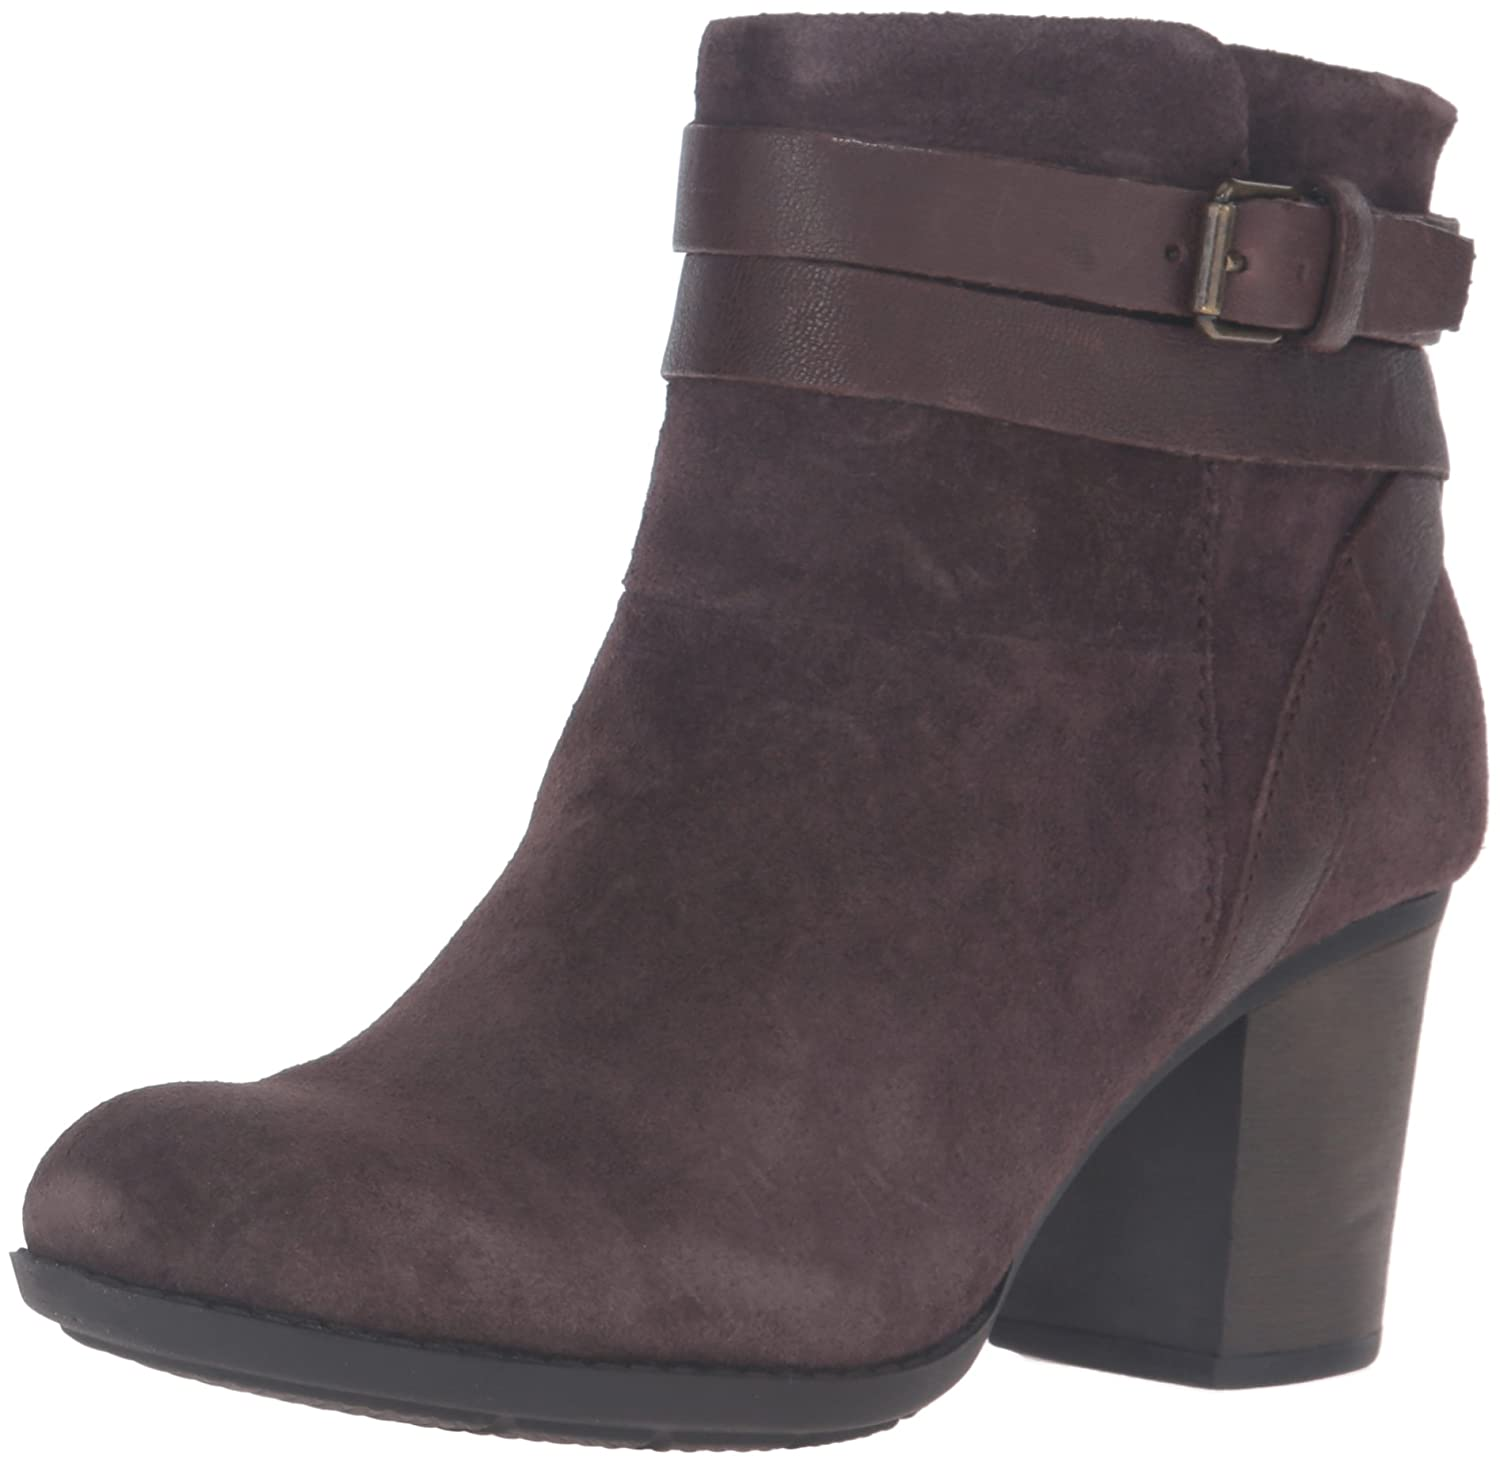 CLARKS Women's Enfield River Boot B0198WG5R2 7 B(M) US Brown Suede